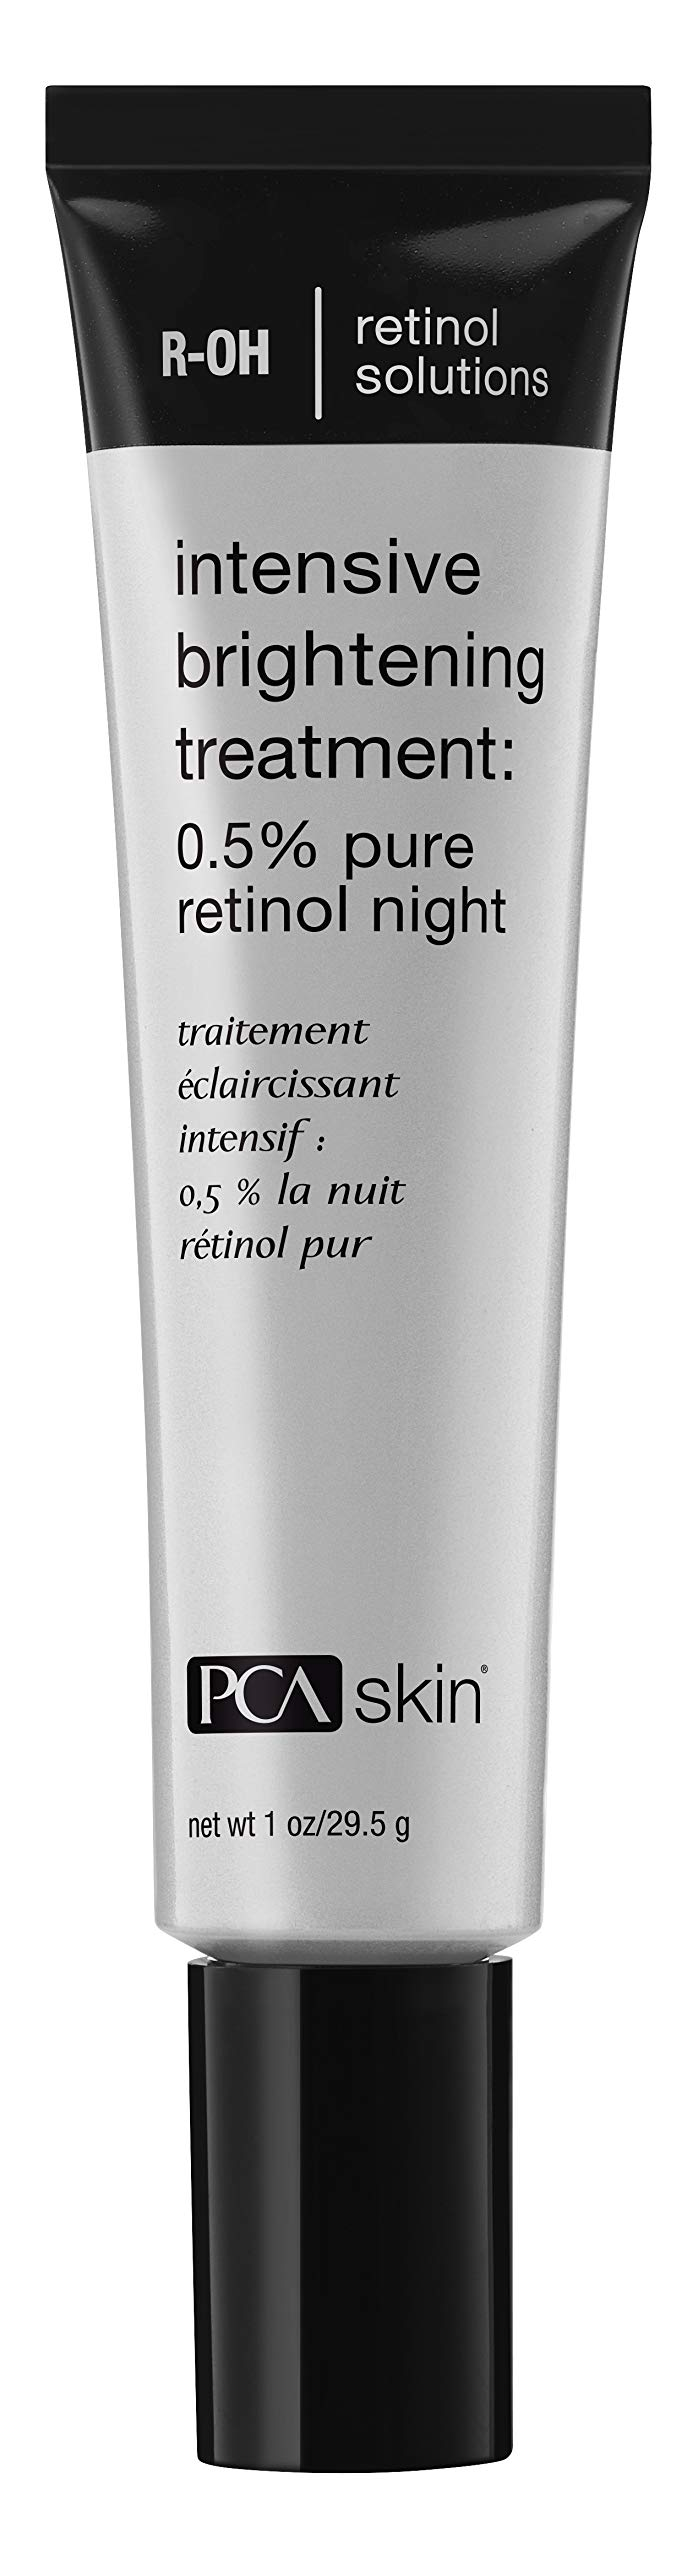 PCA SKIN Intensive Brightening Treatment: 0.5% pure retinol night, Discoloration Nighttime Treatment, 1 fluid ounce